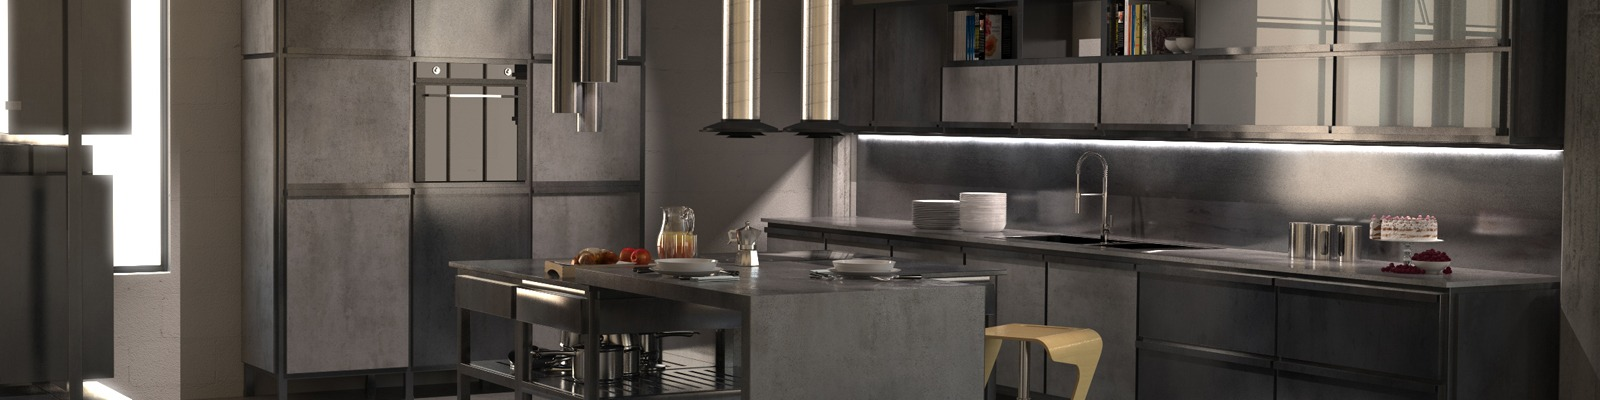 design cucina industriale